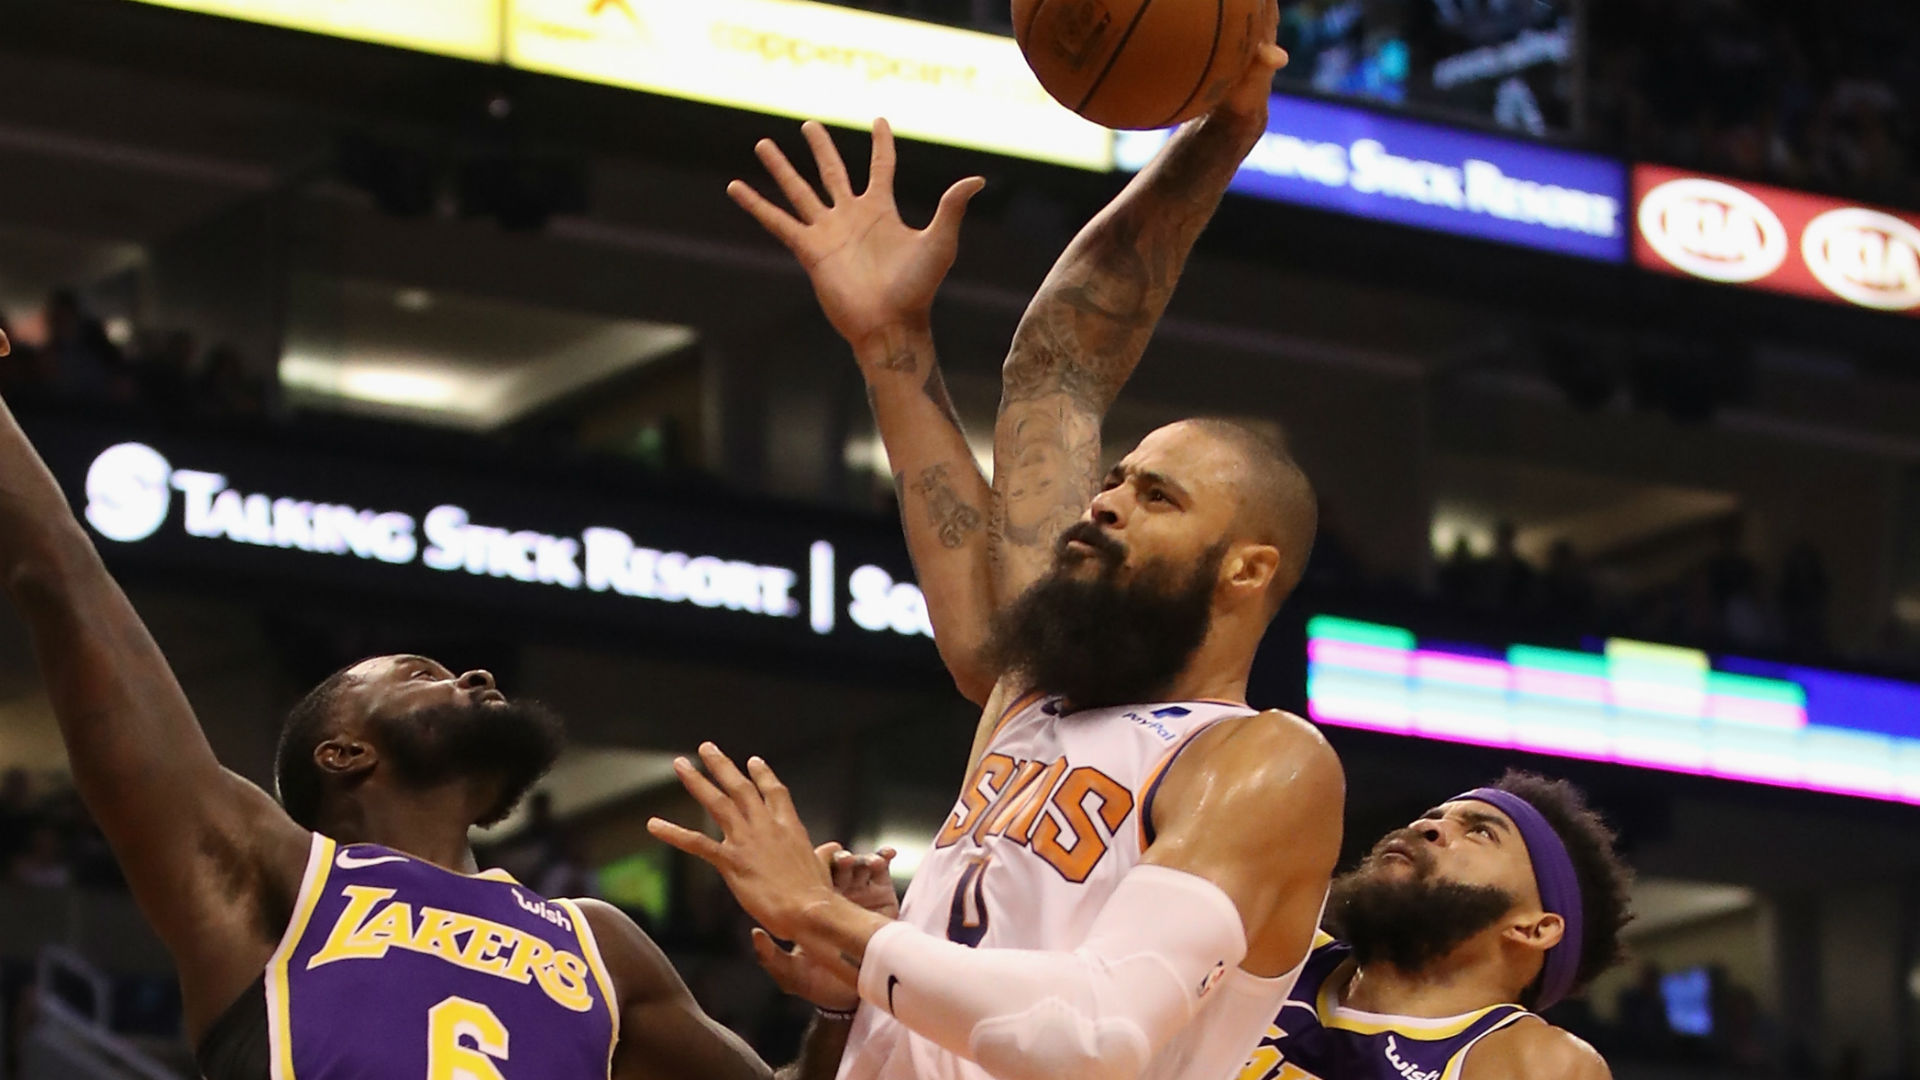 3 reasons signing Tyson Chandler would be smart